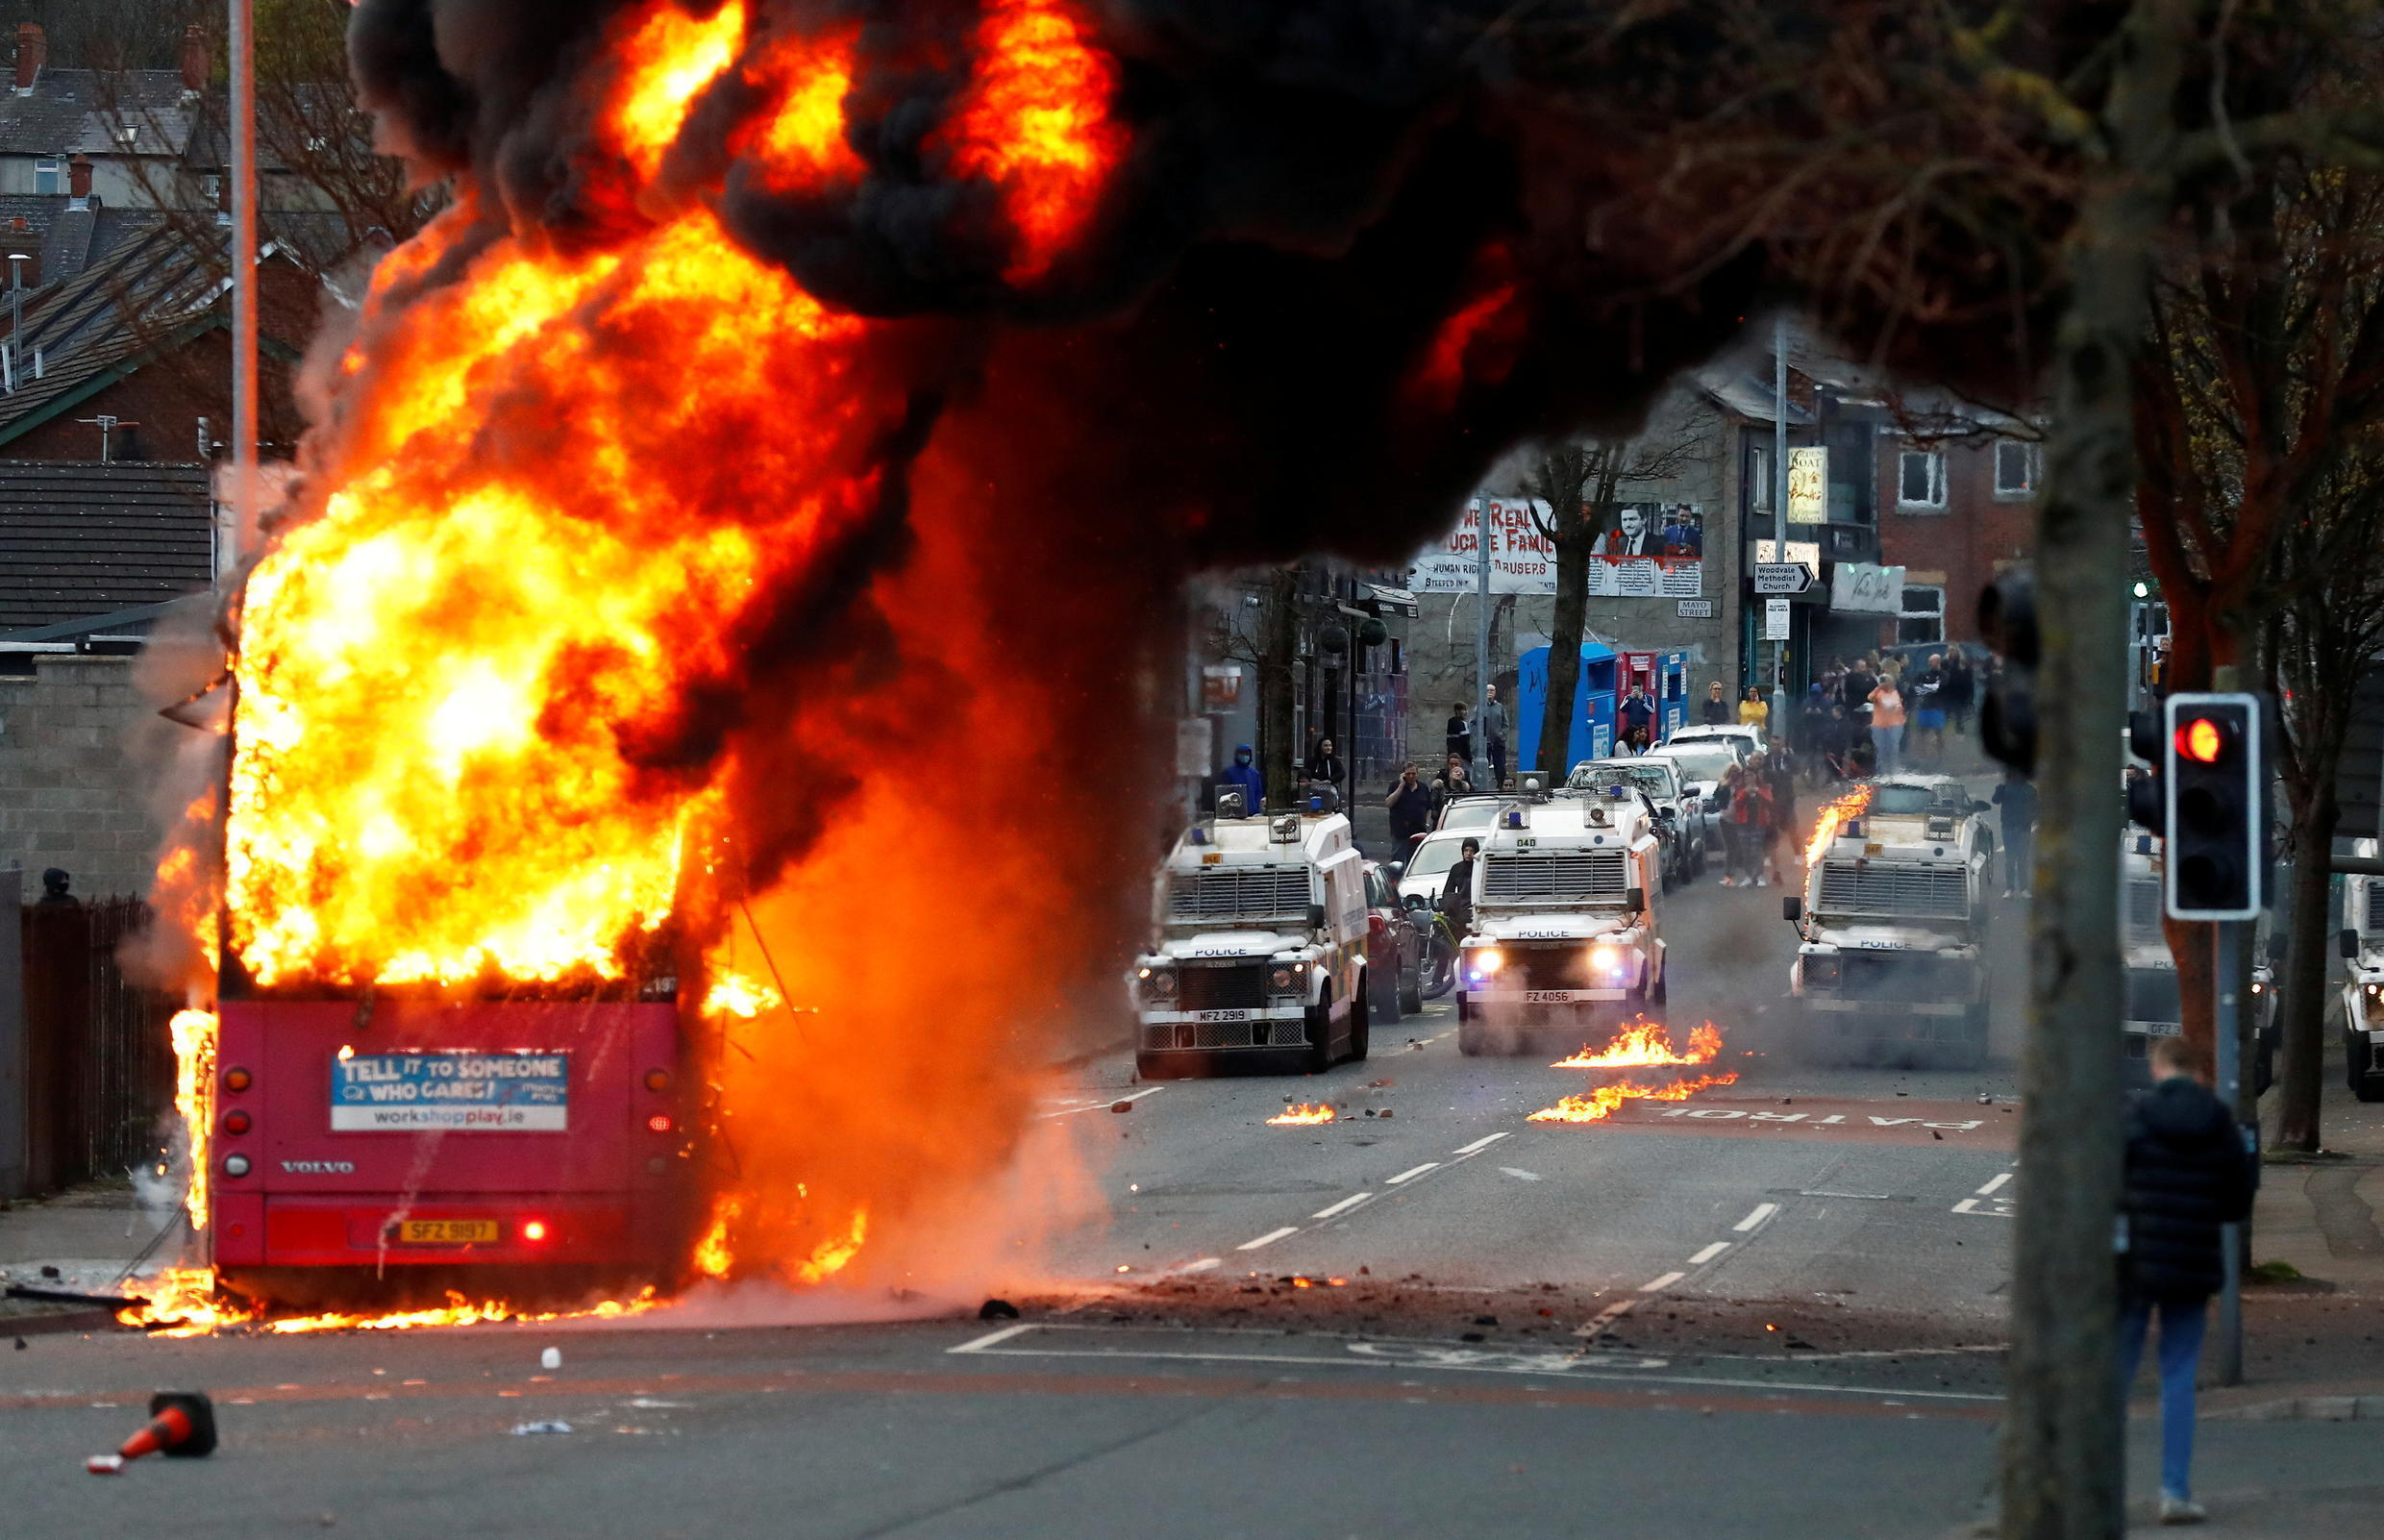 NORTHERN IRELAND PROTESTS BUS ON FIRE